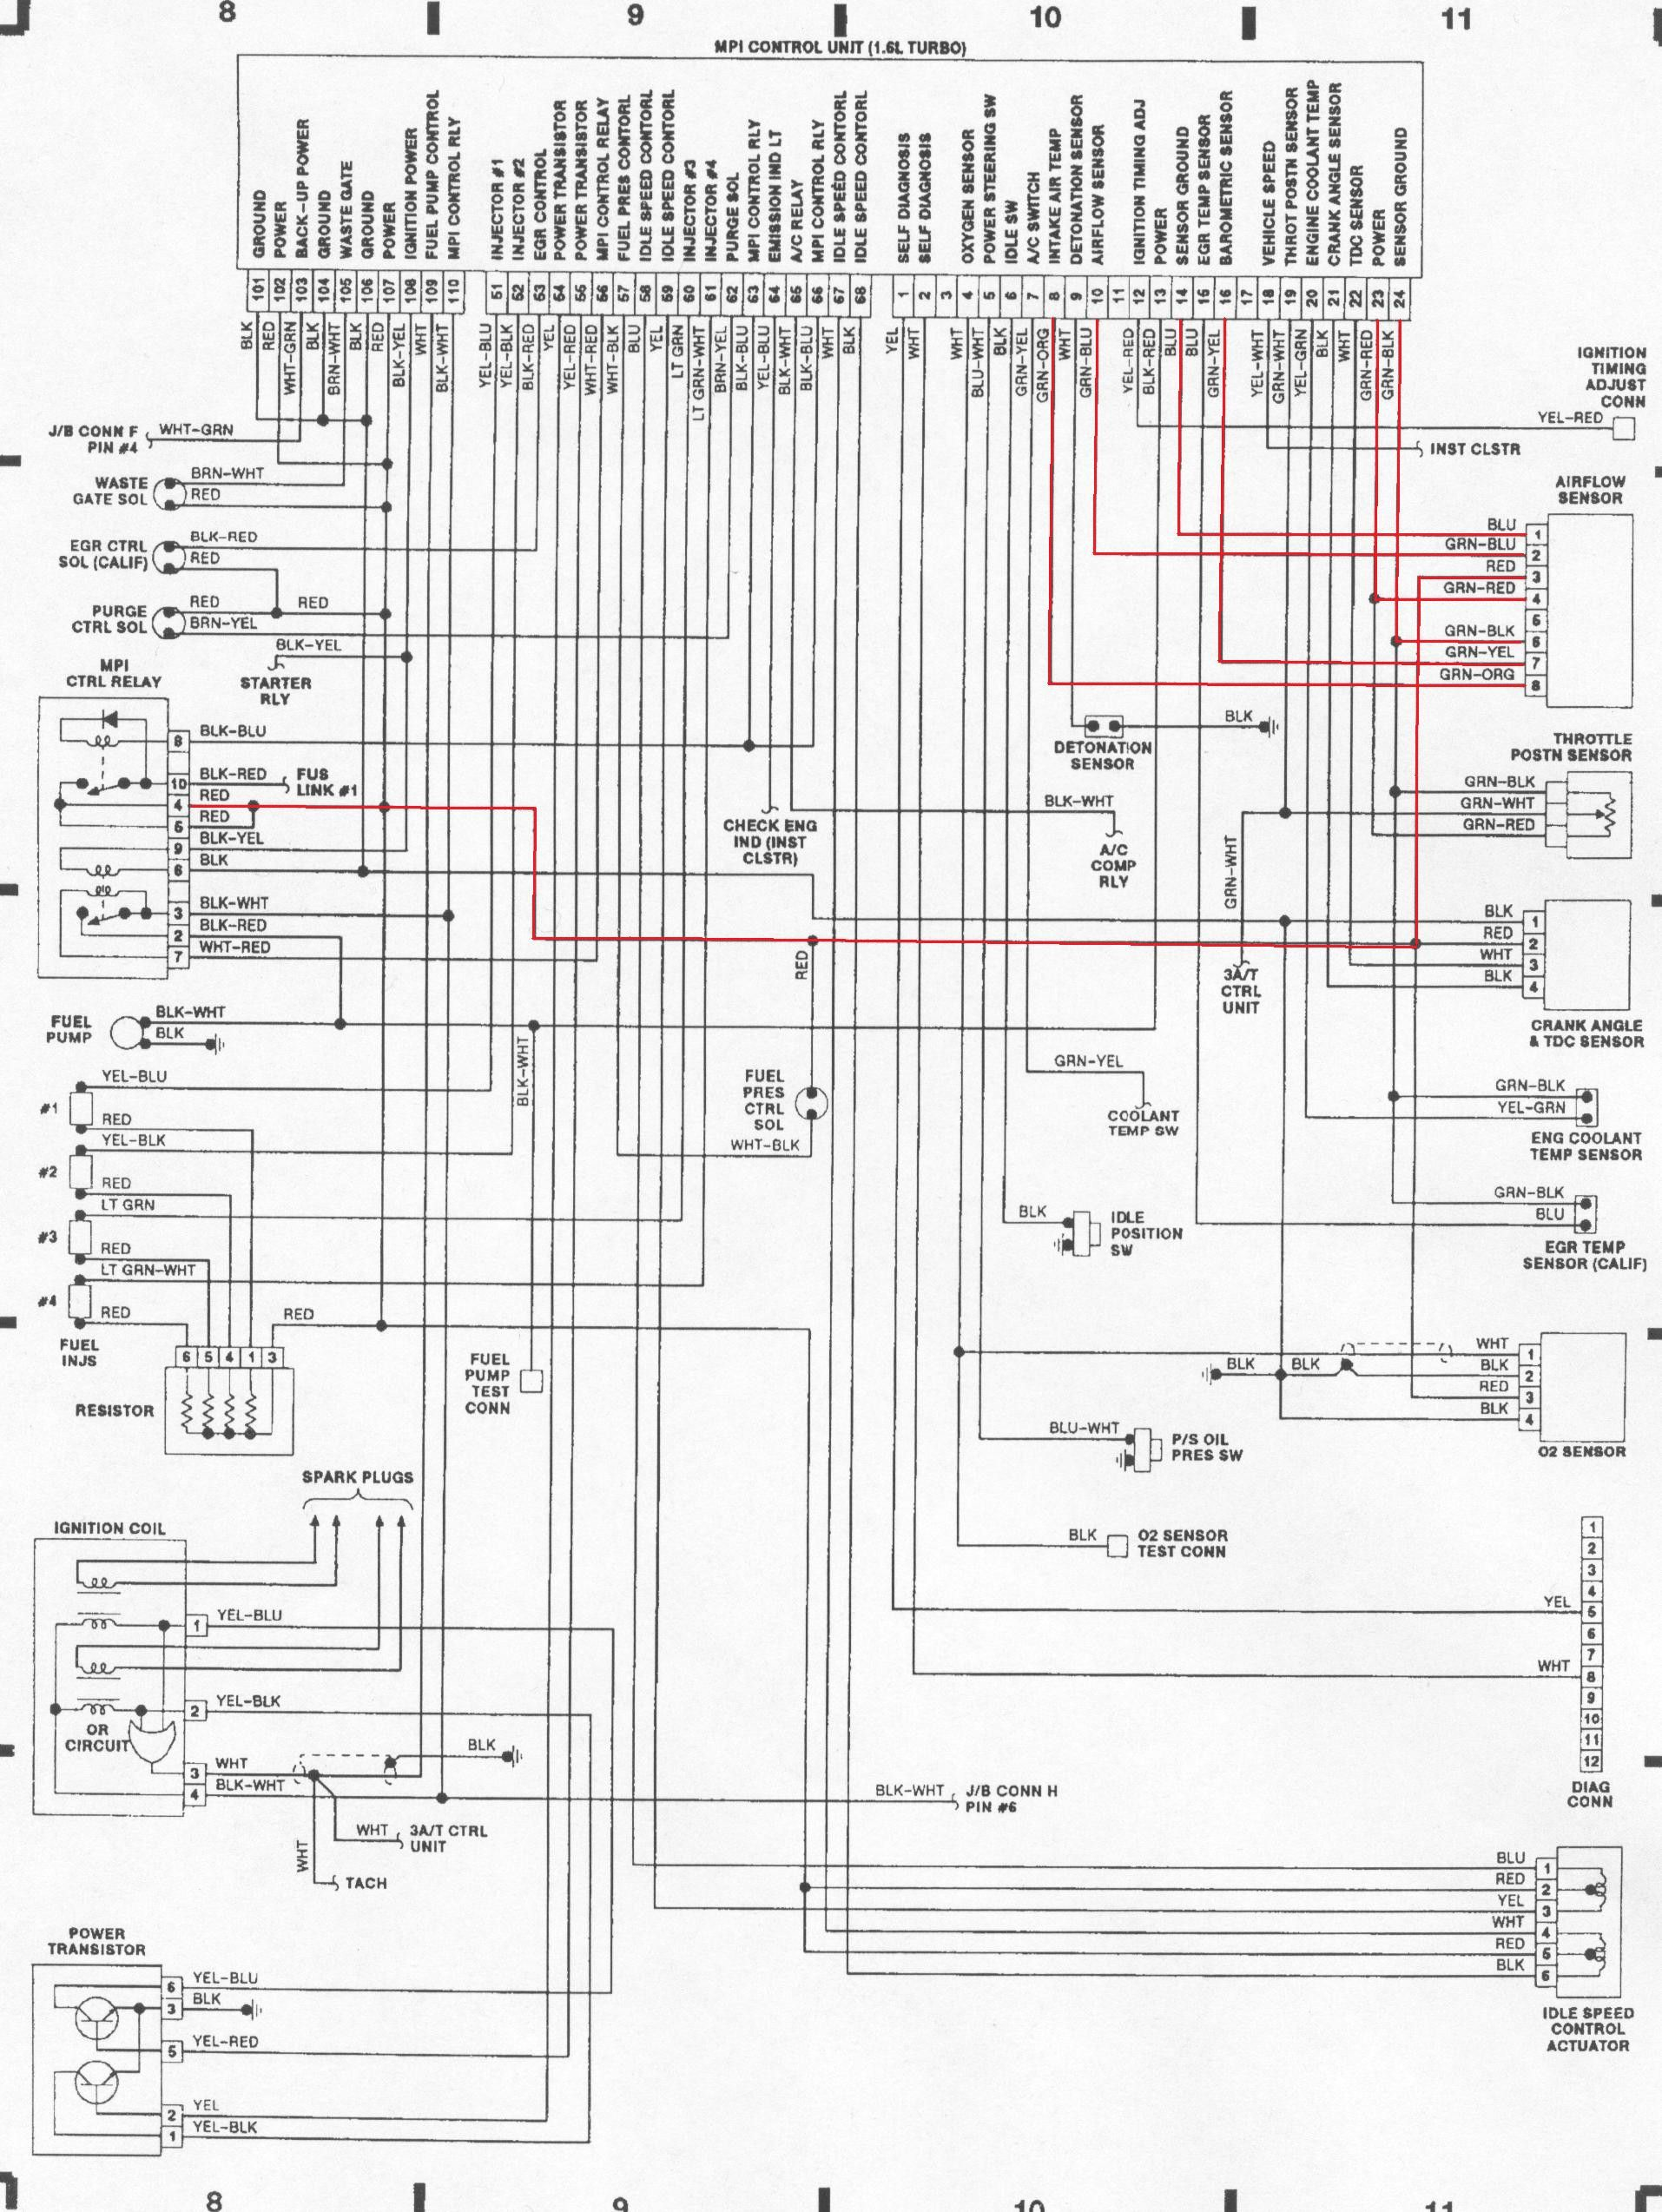 Mitsubishi Mirage Wiring Diagram Just Another Blog 1 5 Engine 4g15 Pdf Virtual Fretboard Inside Rh Pinterest Com Radio 1997